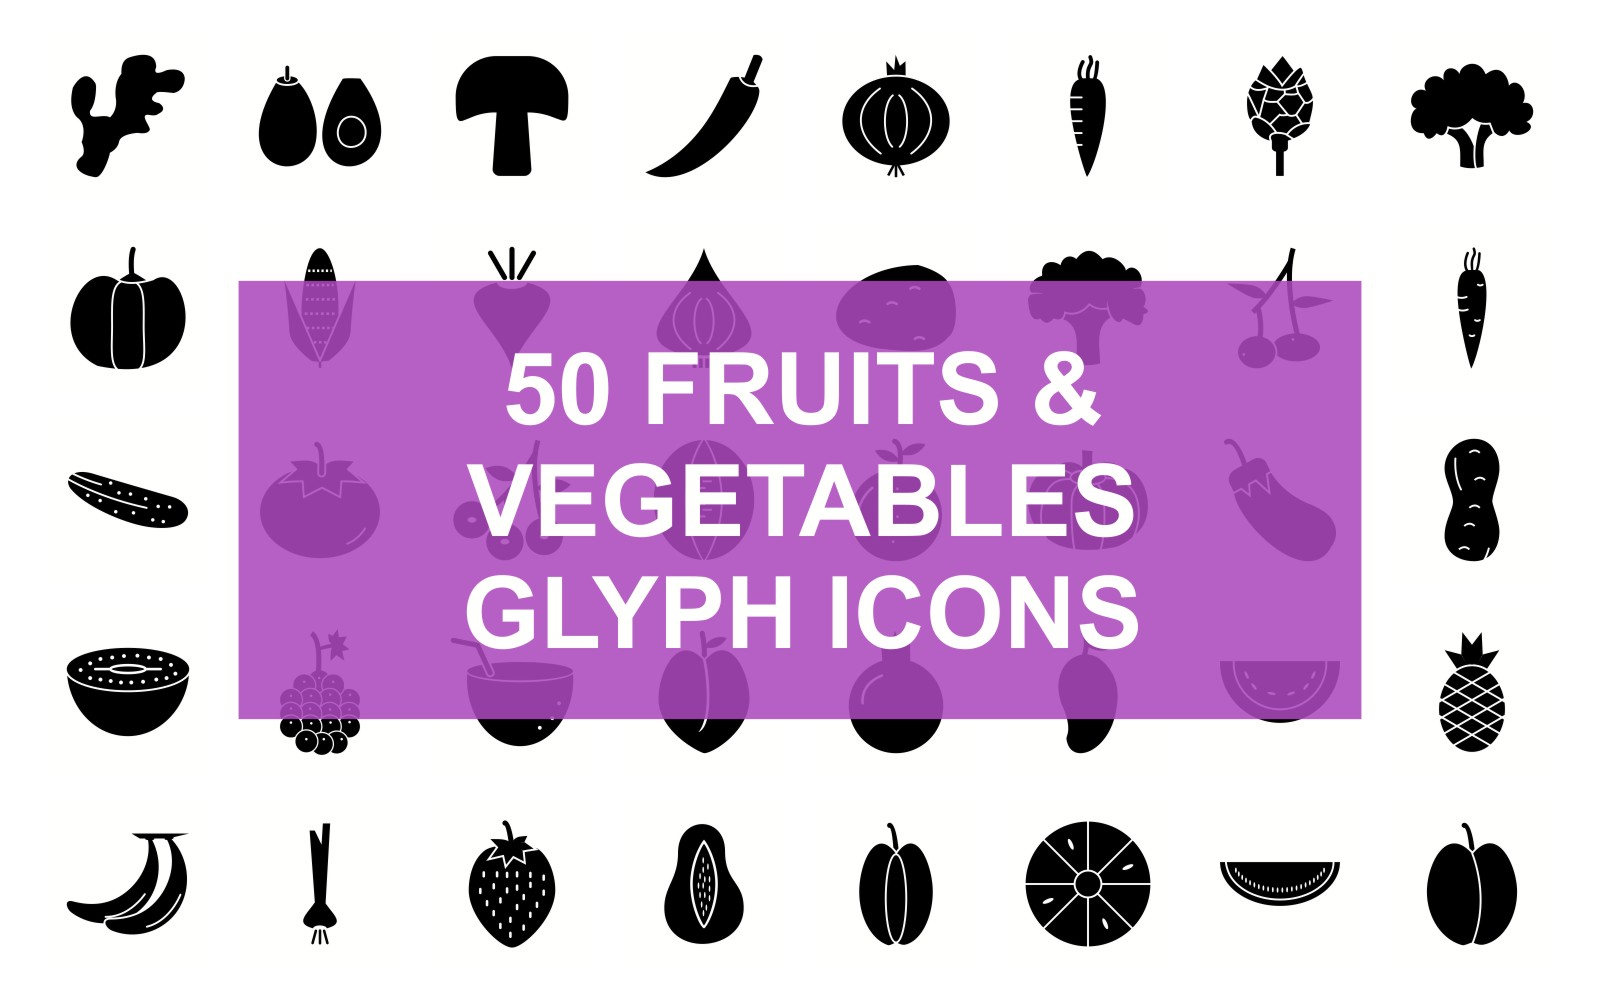 Fruits & Vegetables Glyph Black Set Iconset Template